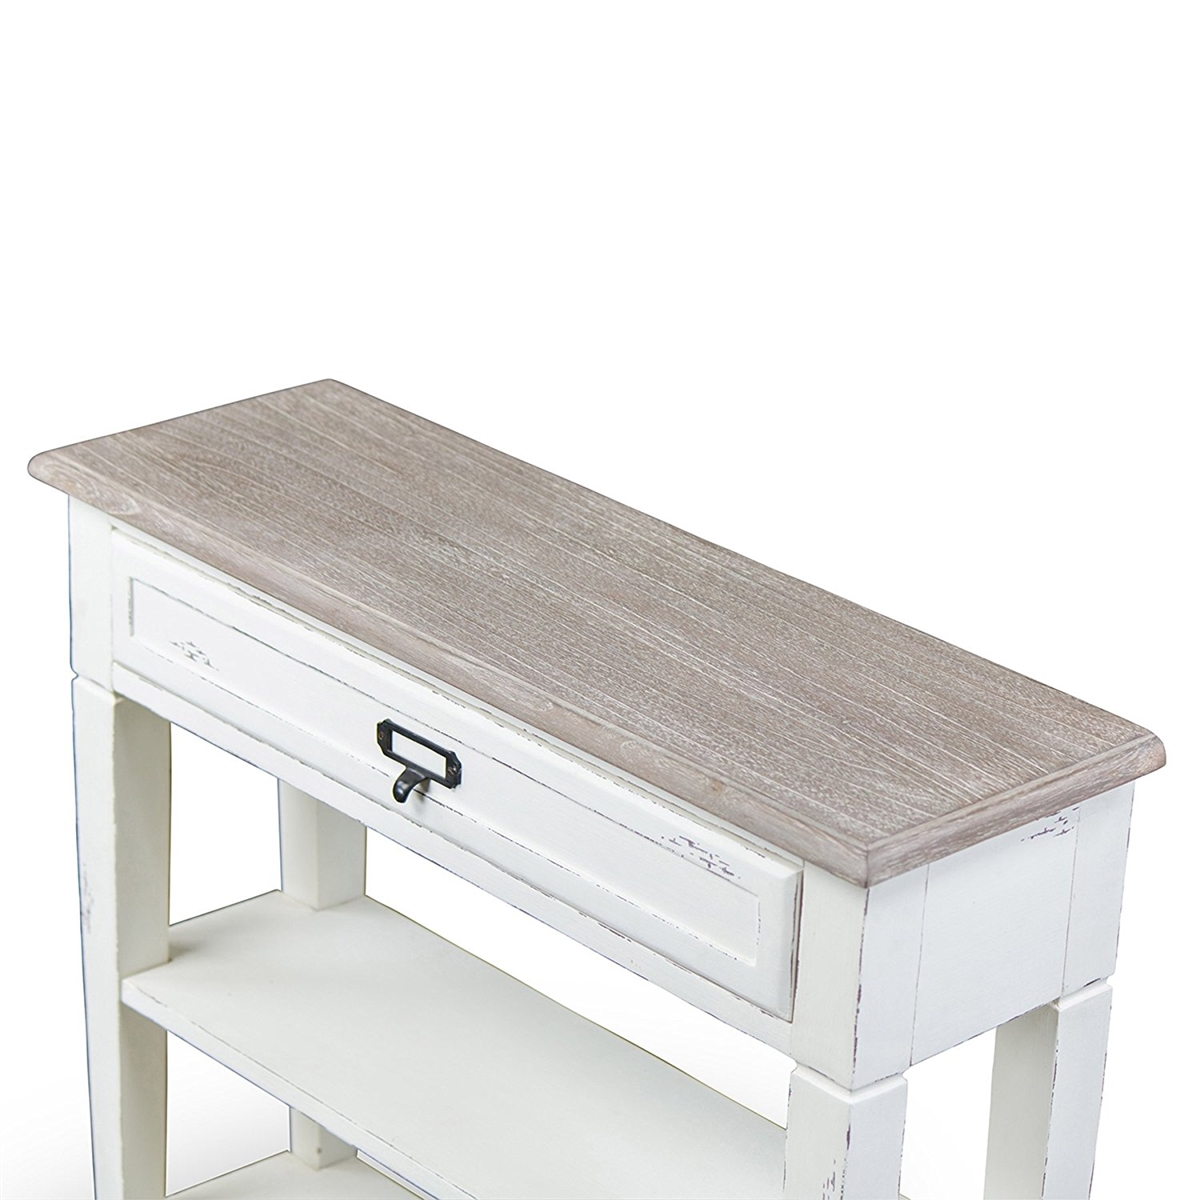 baxton studio dauphine traditional french drawer accent console table with drawers white floor ikea unique home pieces corner wine rack metal nic tables ocean decor dining cover